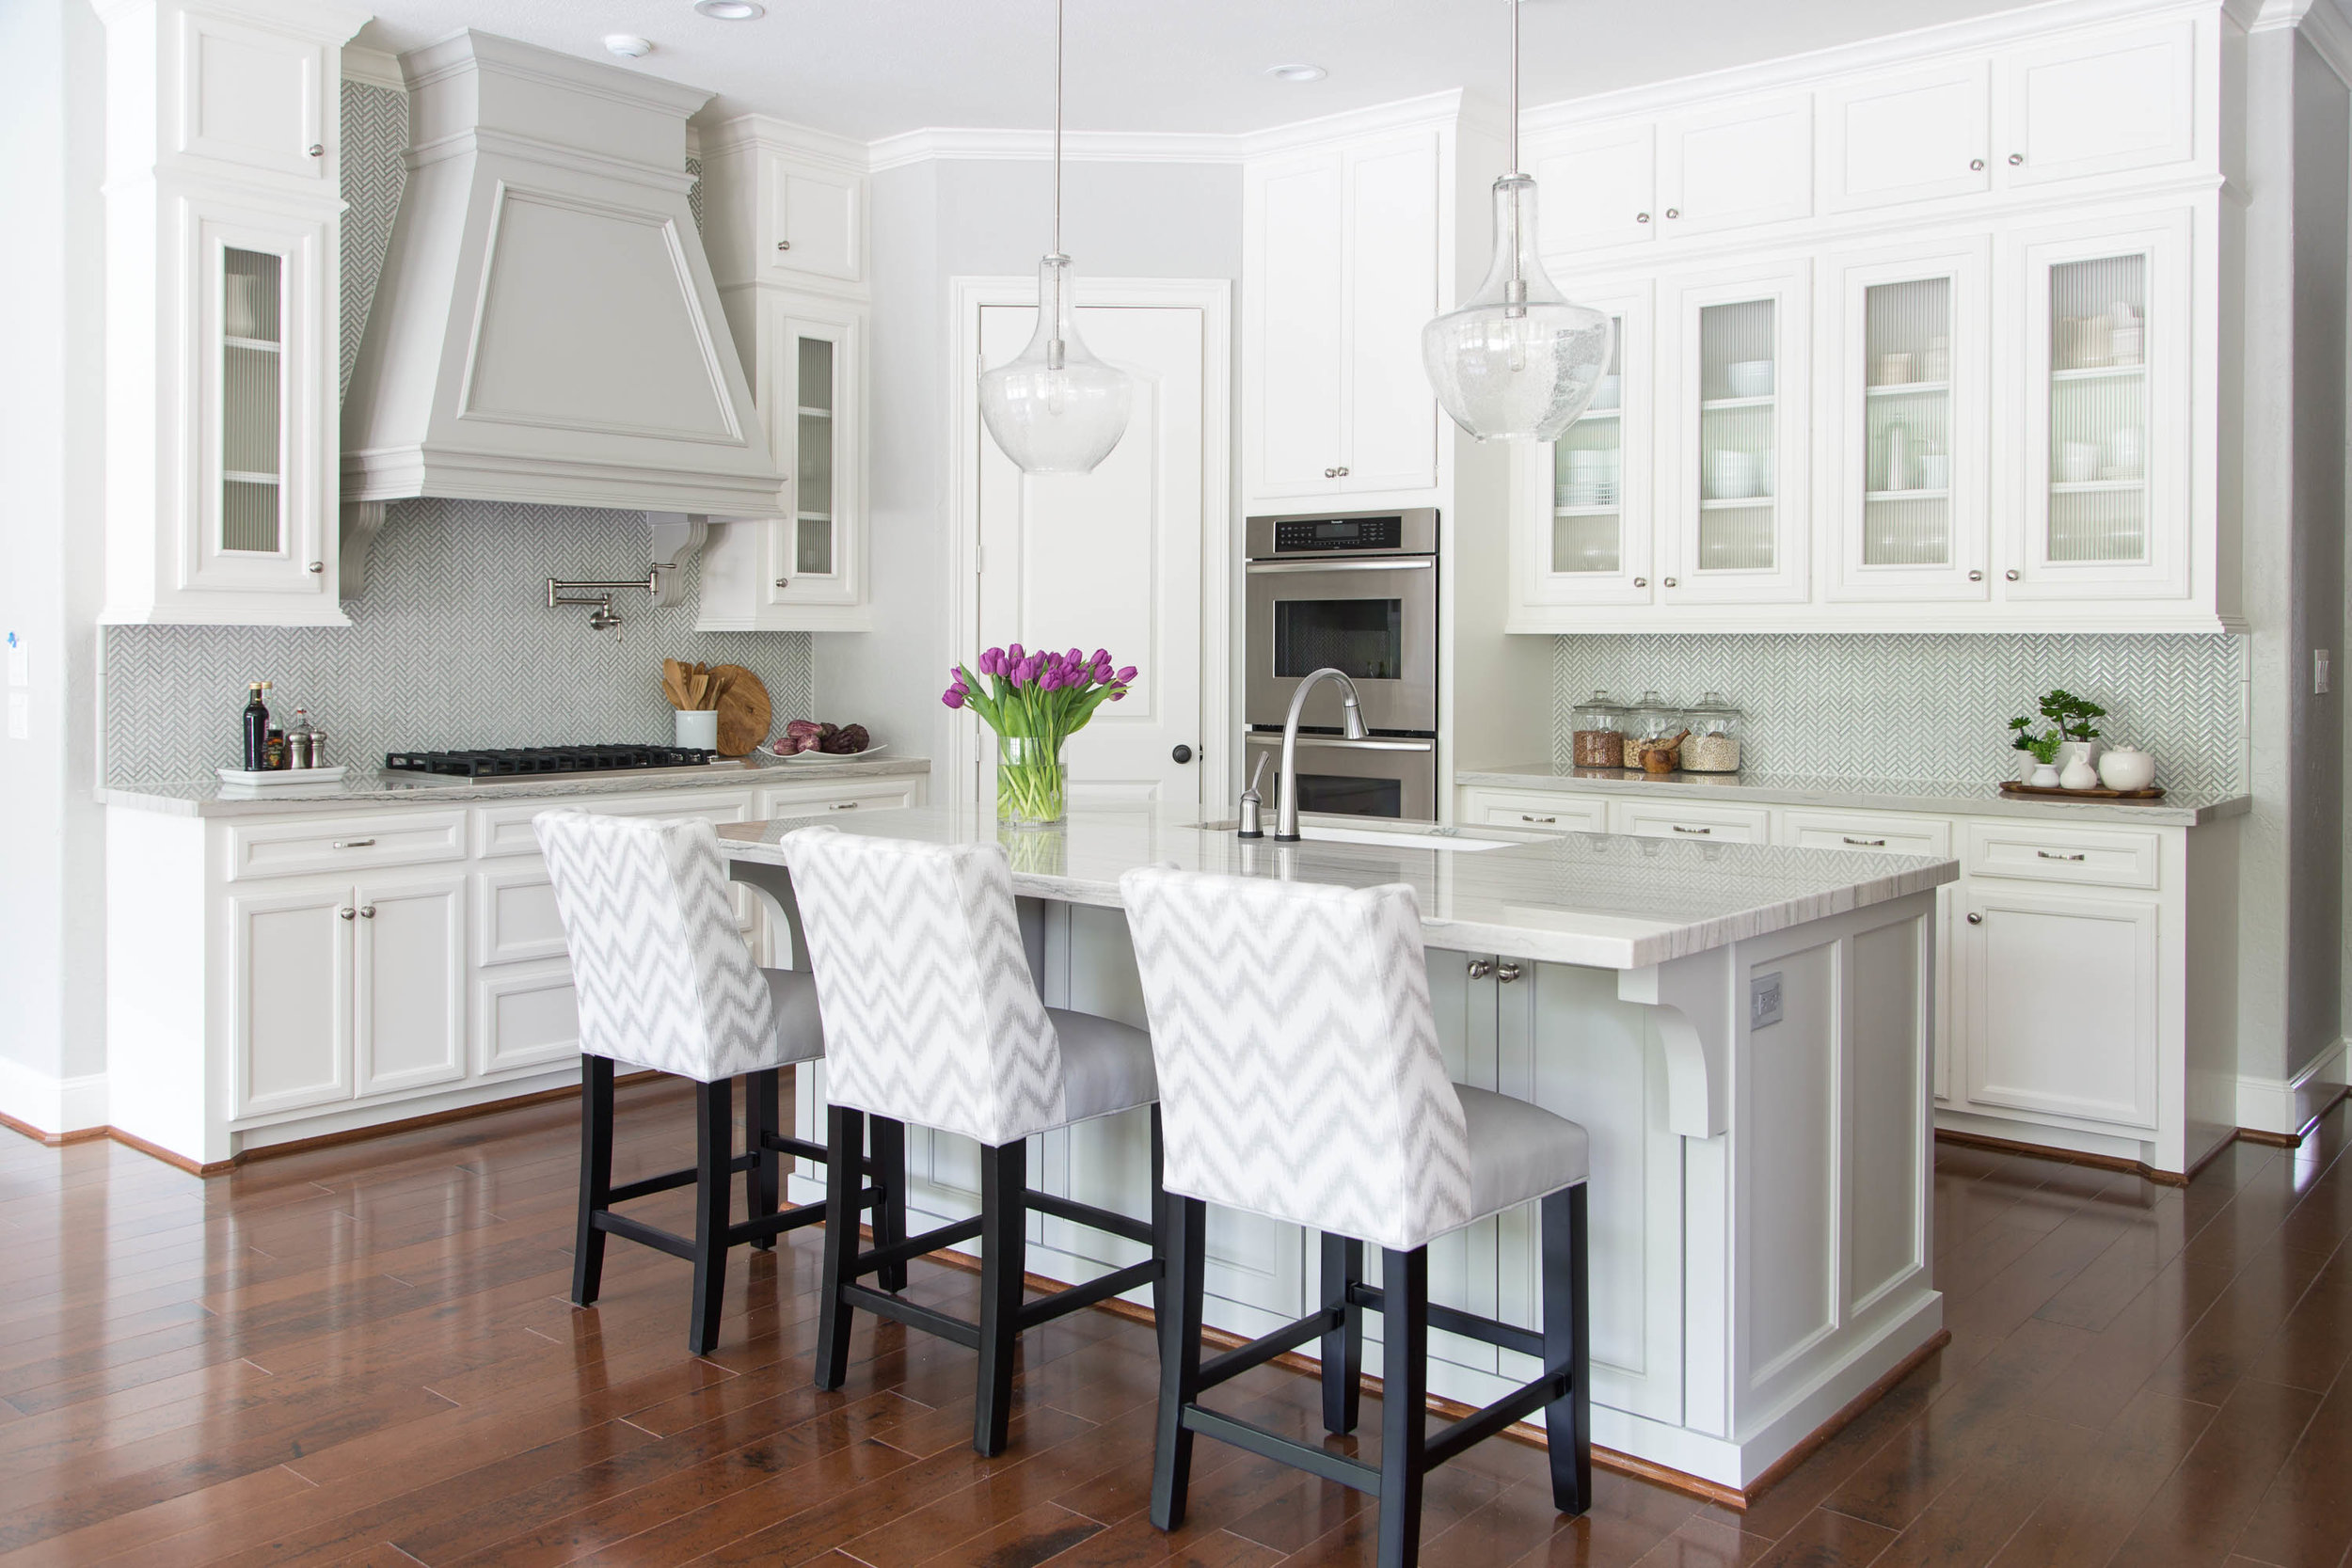 Wood floors add warmth to this white and gray kitchen | Designer: Carla Aston, Photographer: Tori Aston #whitekitchen